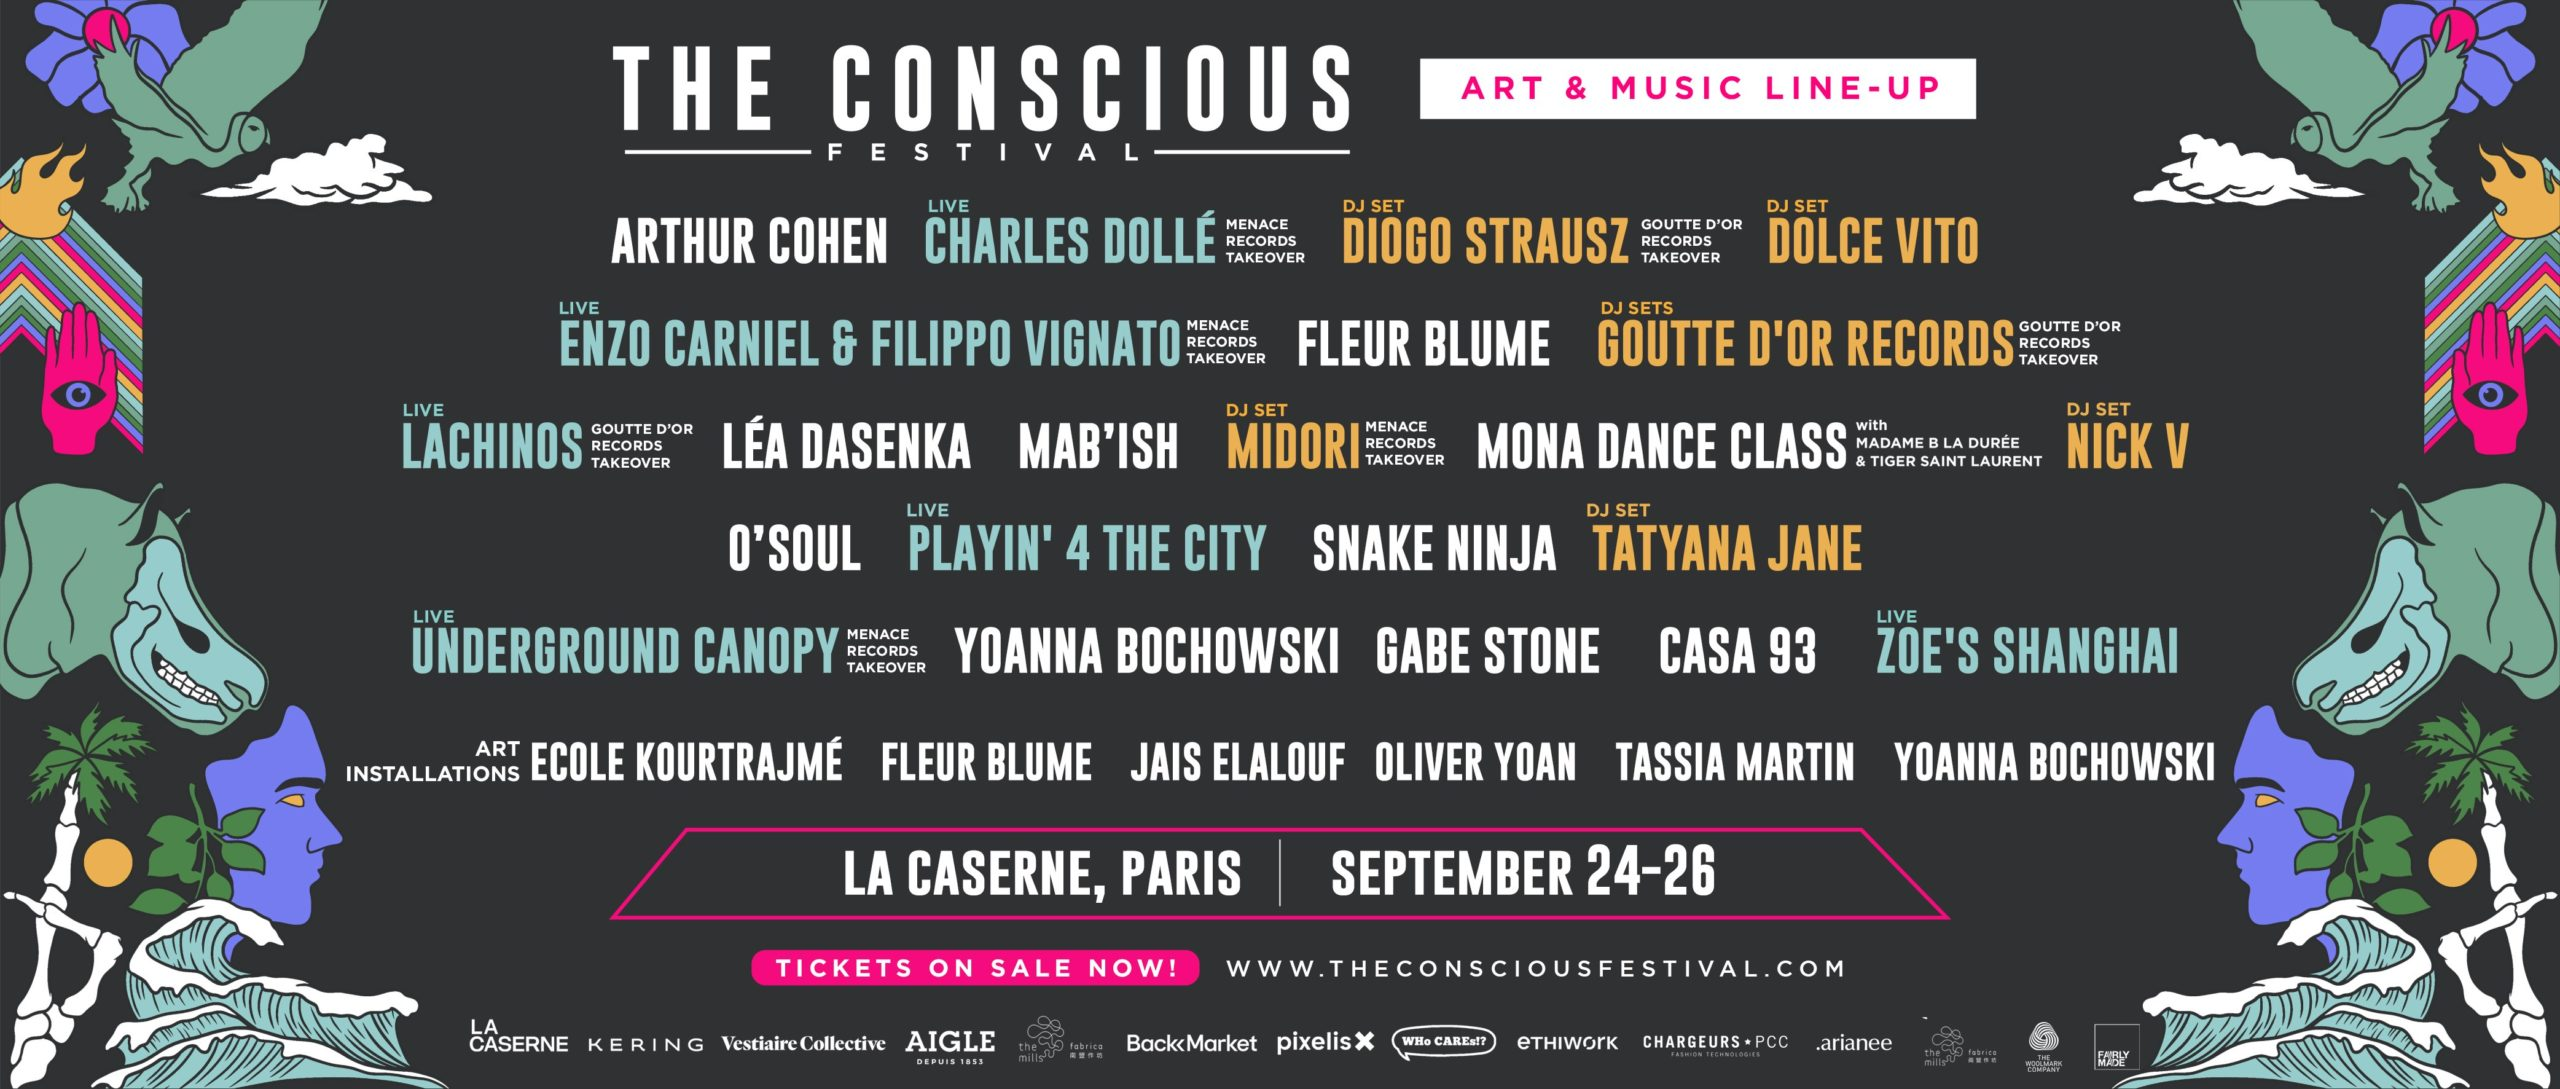 the conscious festival art and music